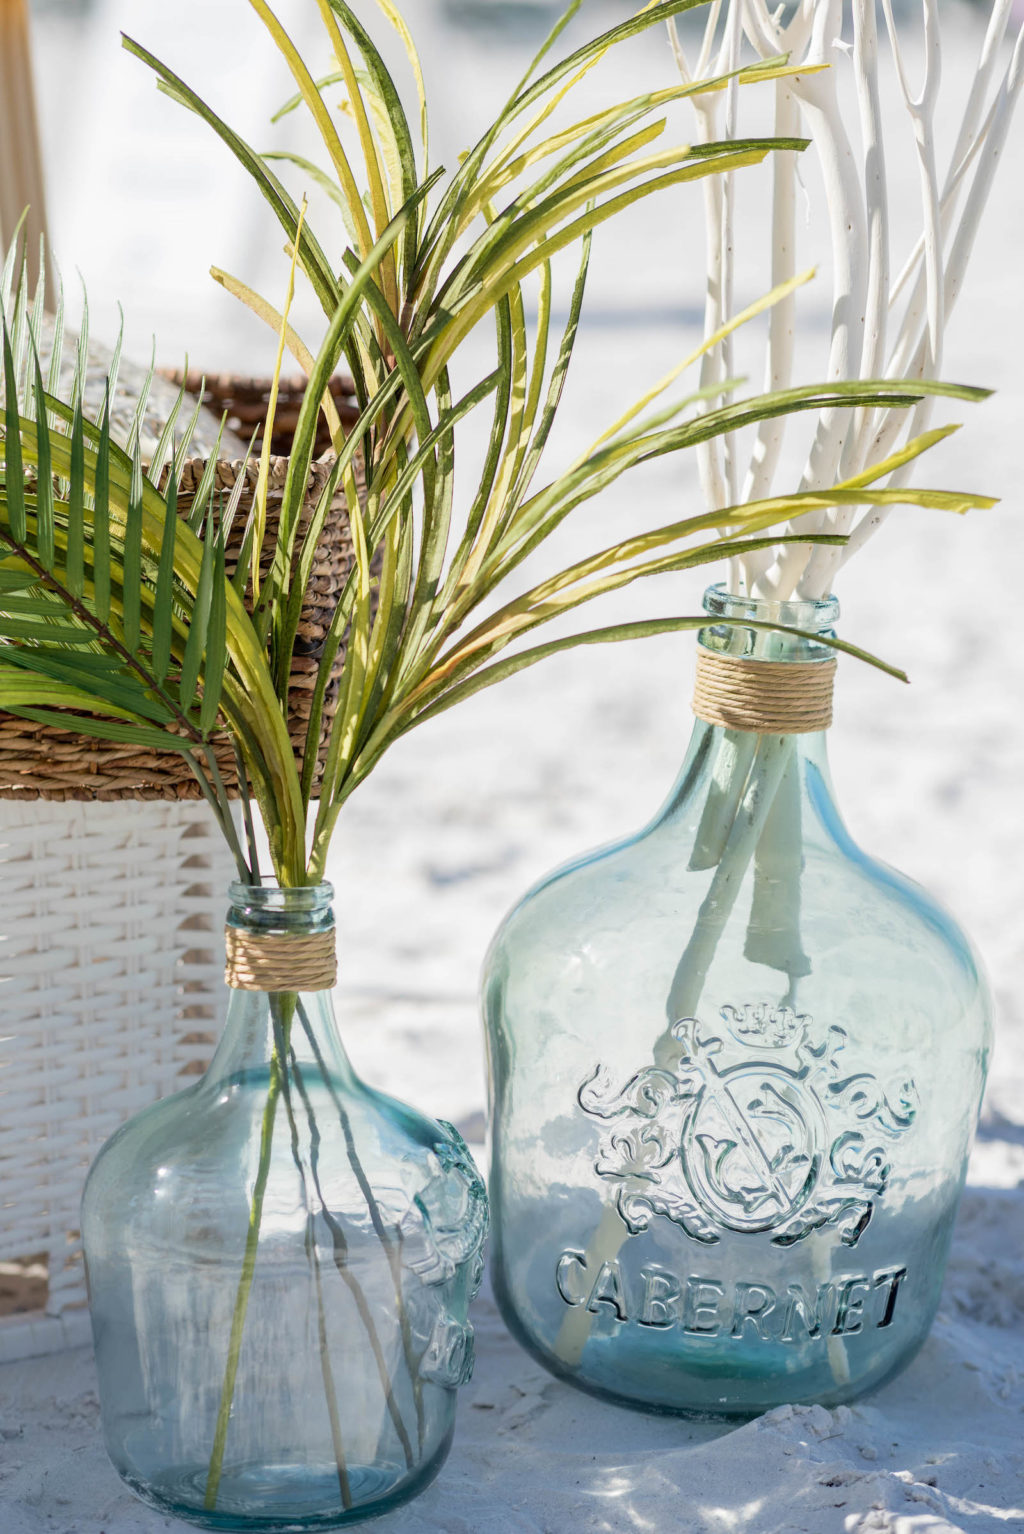 St. Pete Beach Wedding Aisle Flower Arrangement Centerpieces Recycled Glass Bottles with Palm Greenery